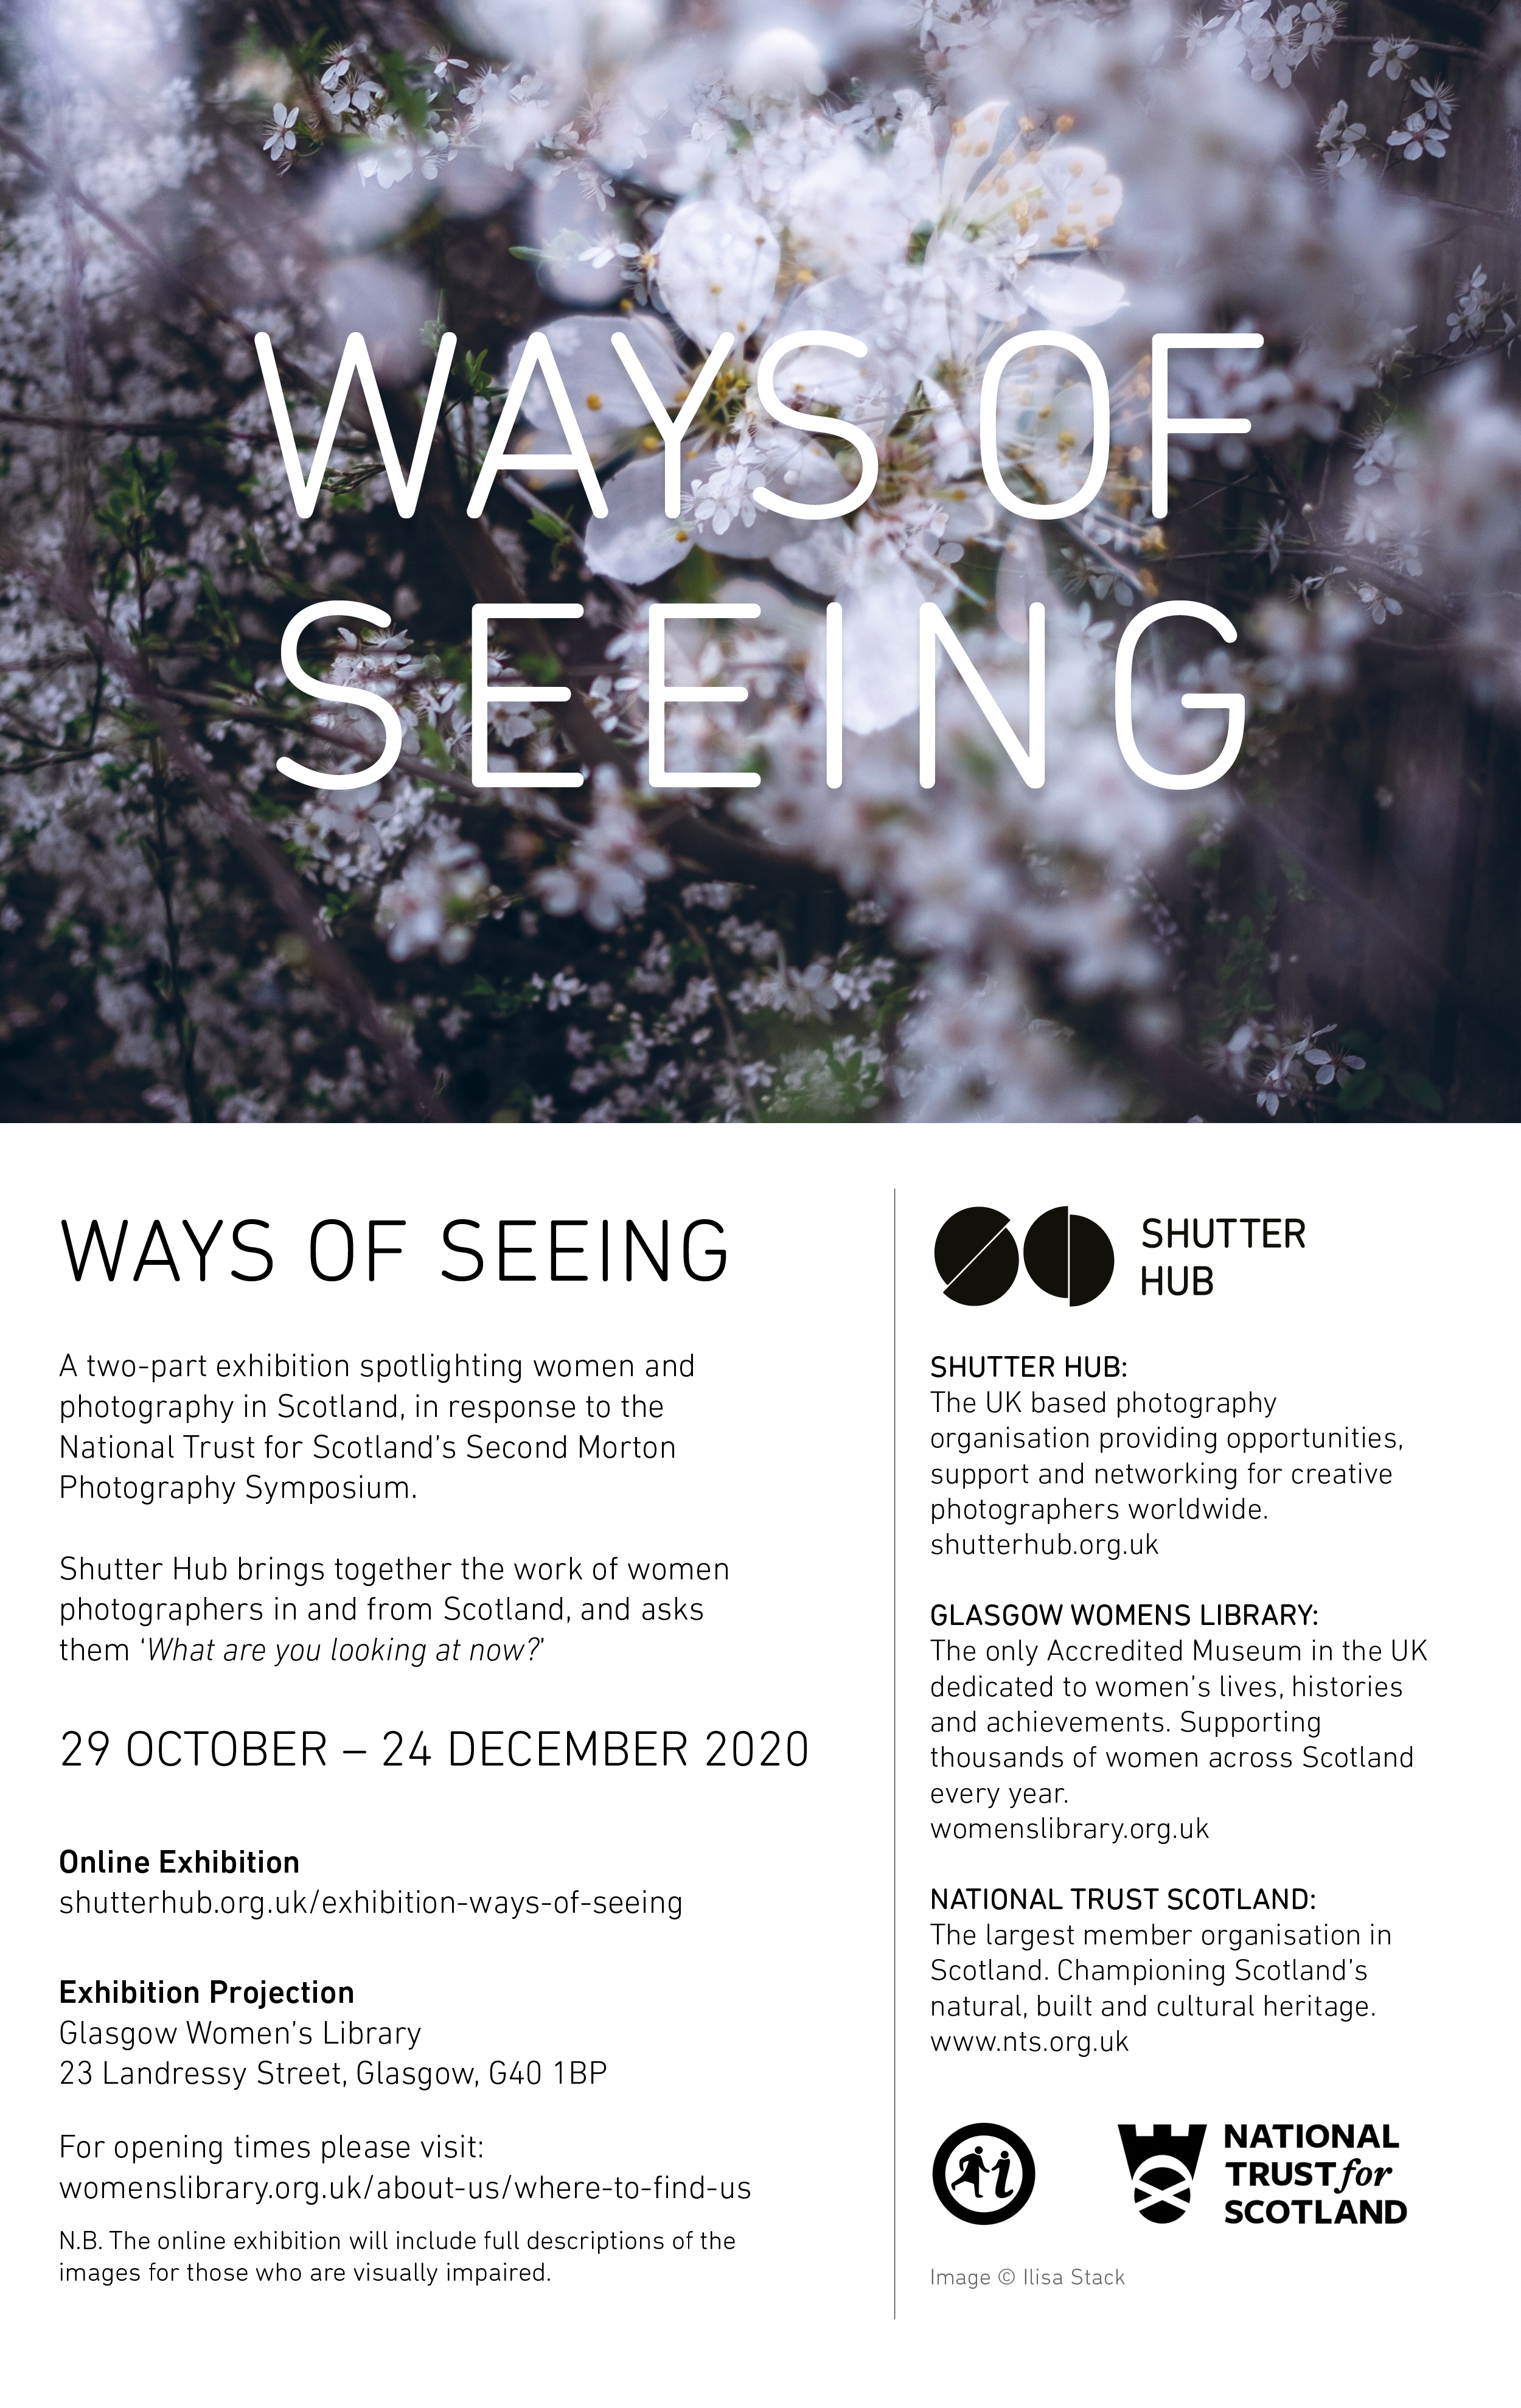 Ways of Seeing exhibition flyer with information about the online exhibition. The information is repeated in text-form on the blog post.